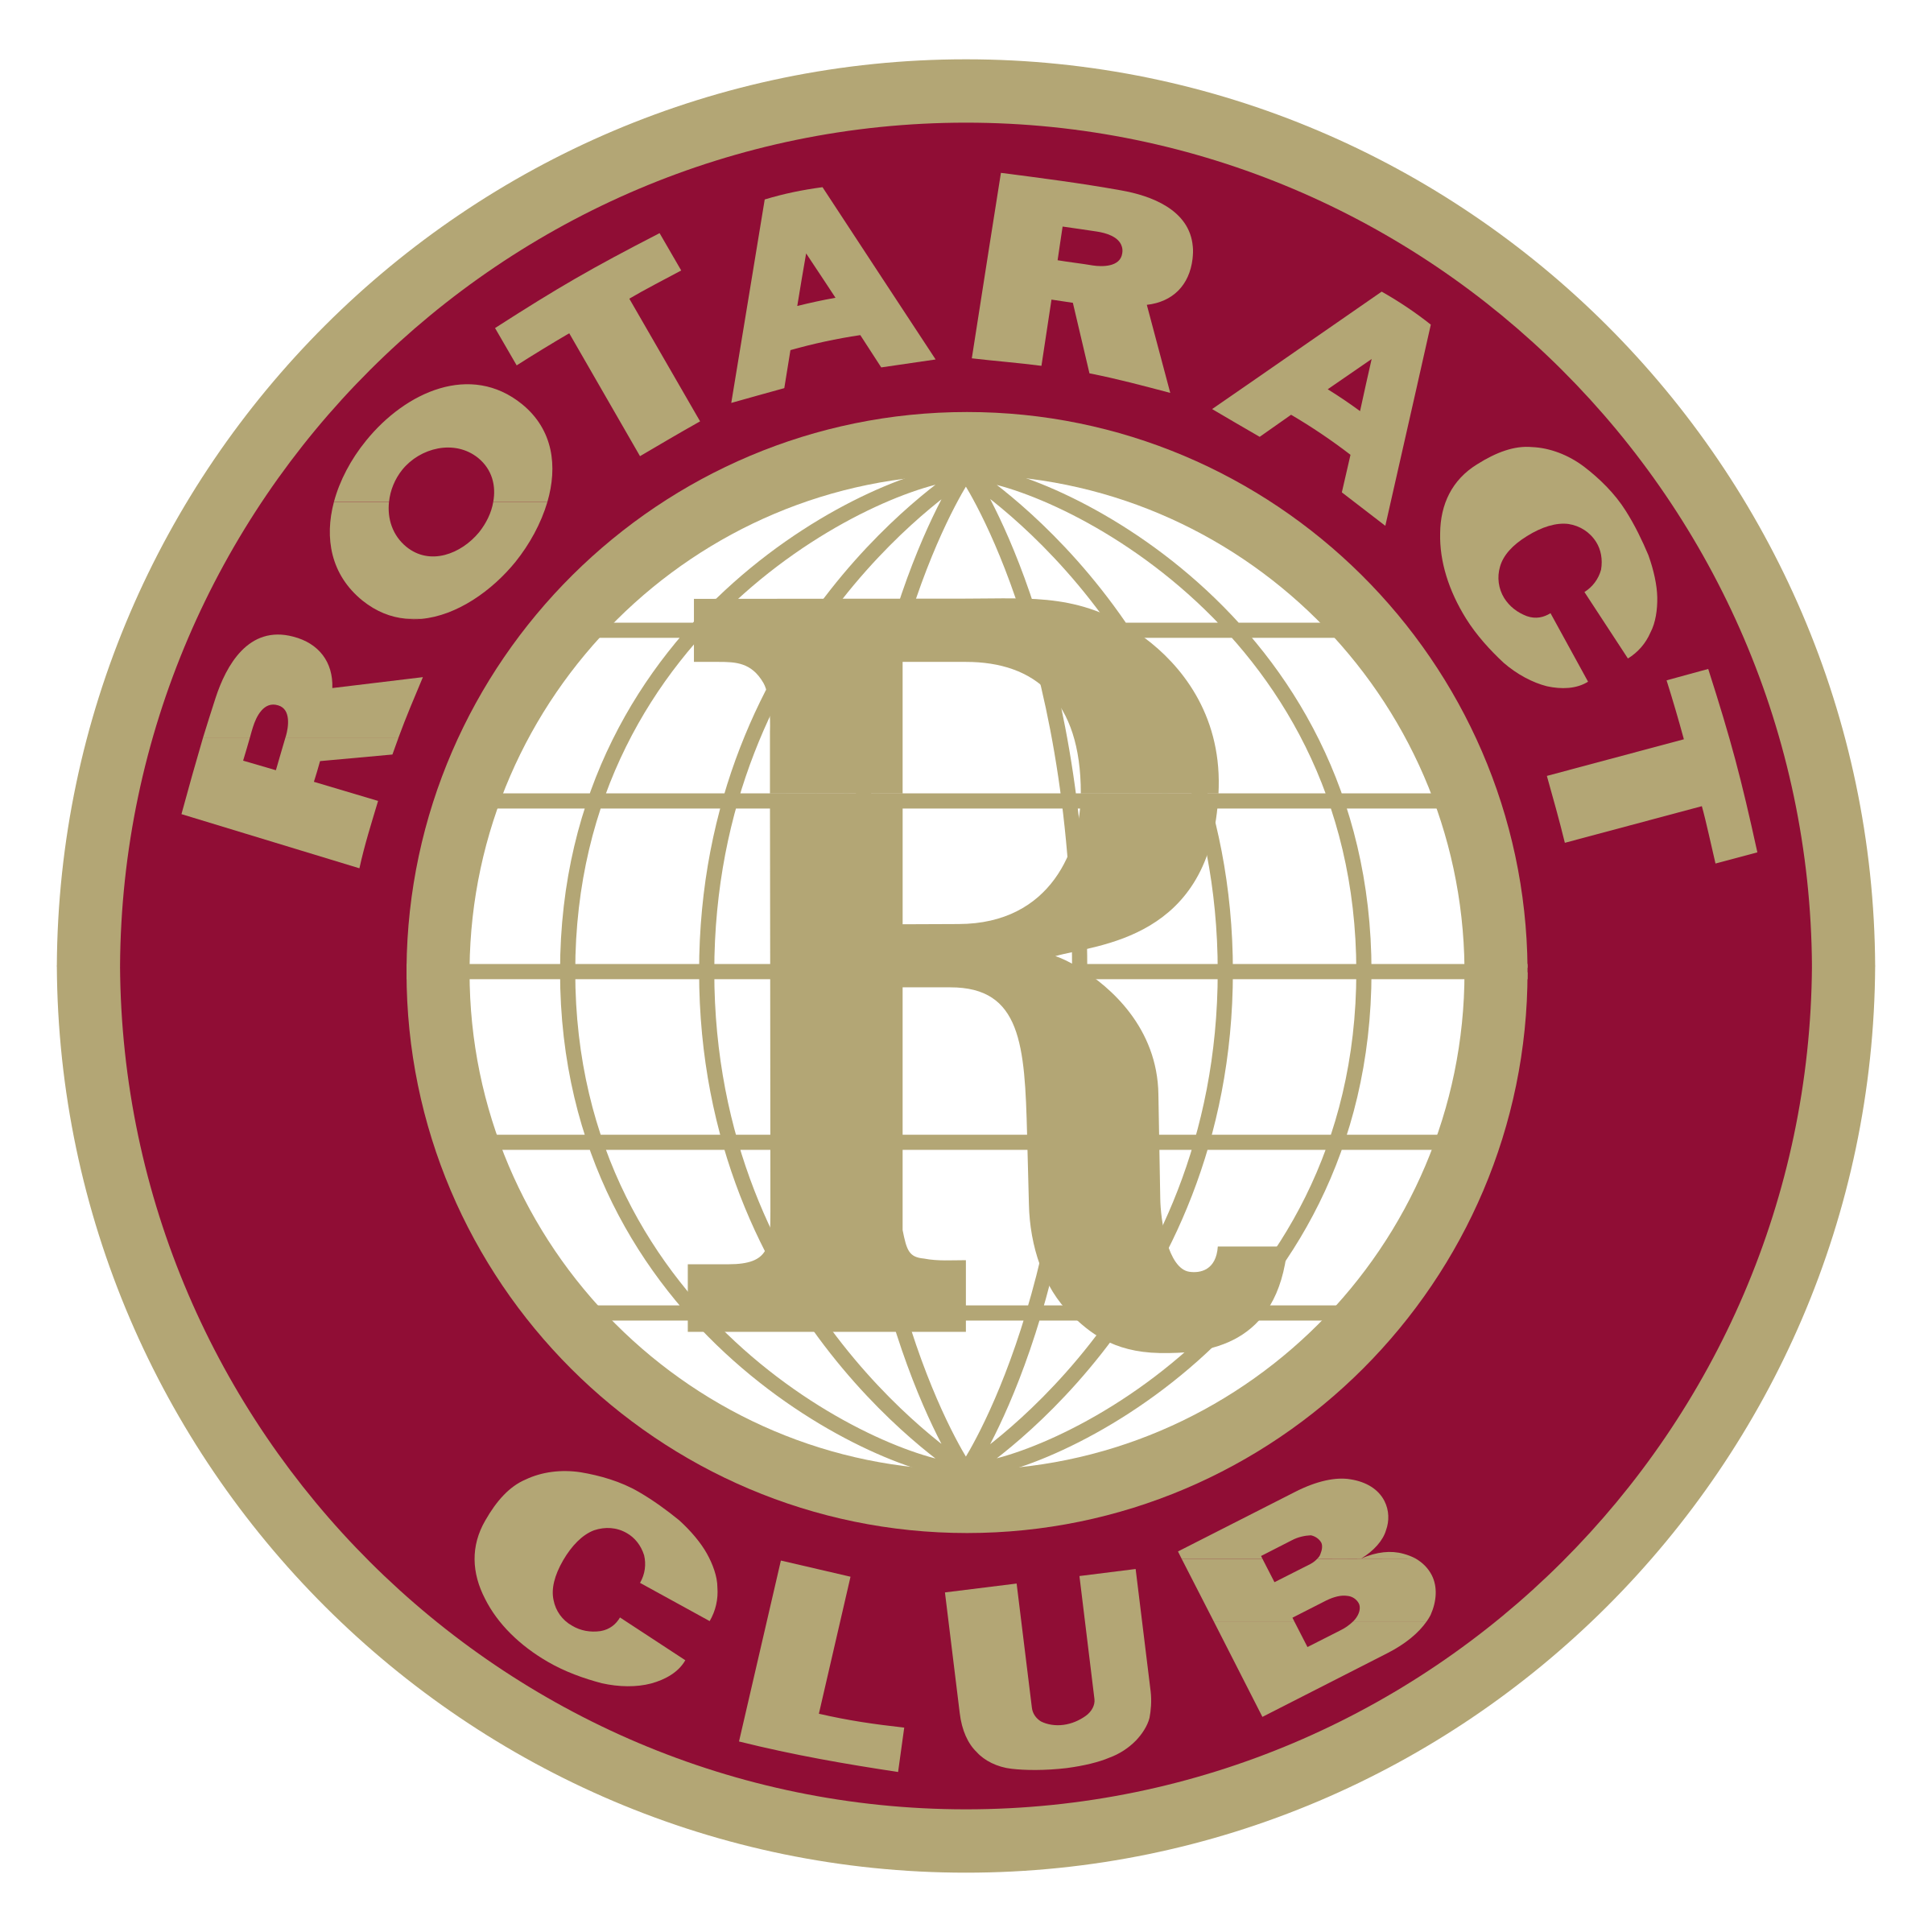 Rotaract Club Logo PNG Transparent & SVG Vector - Freebie Supply